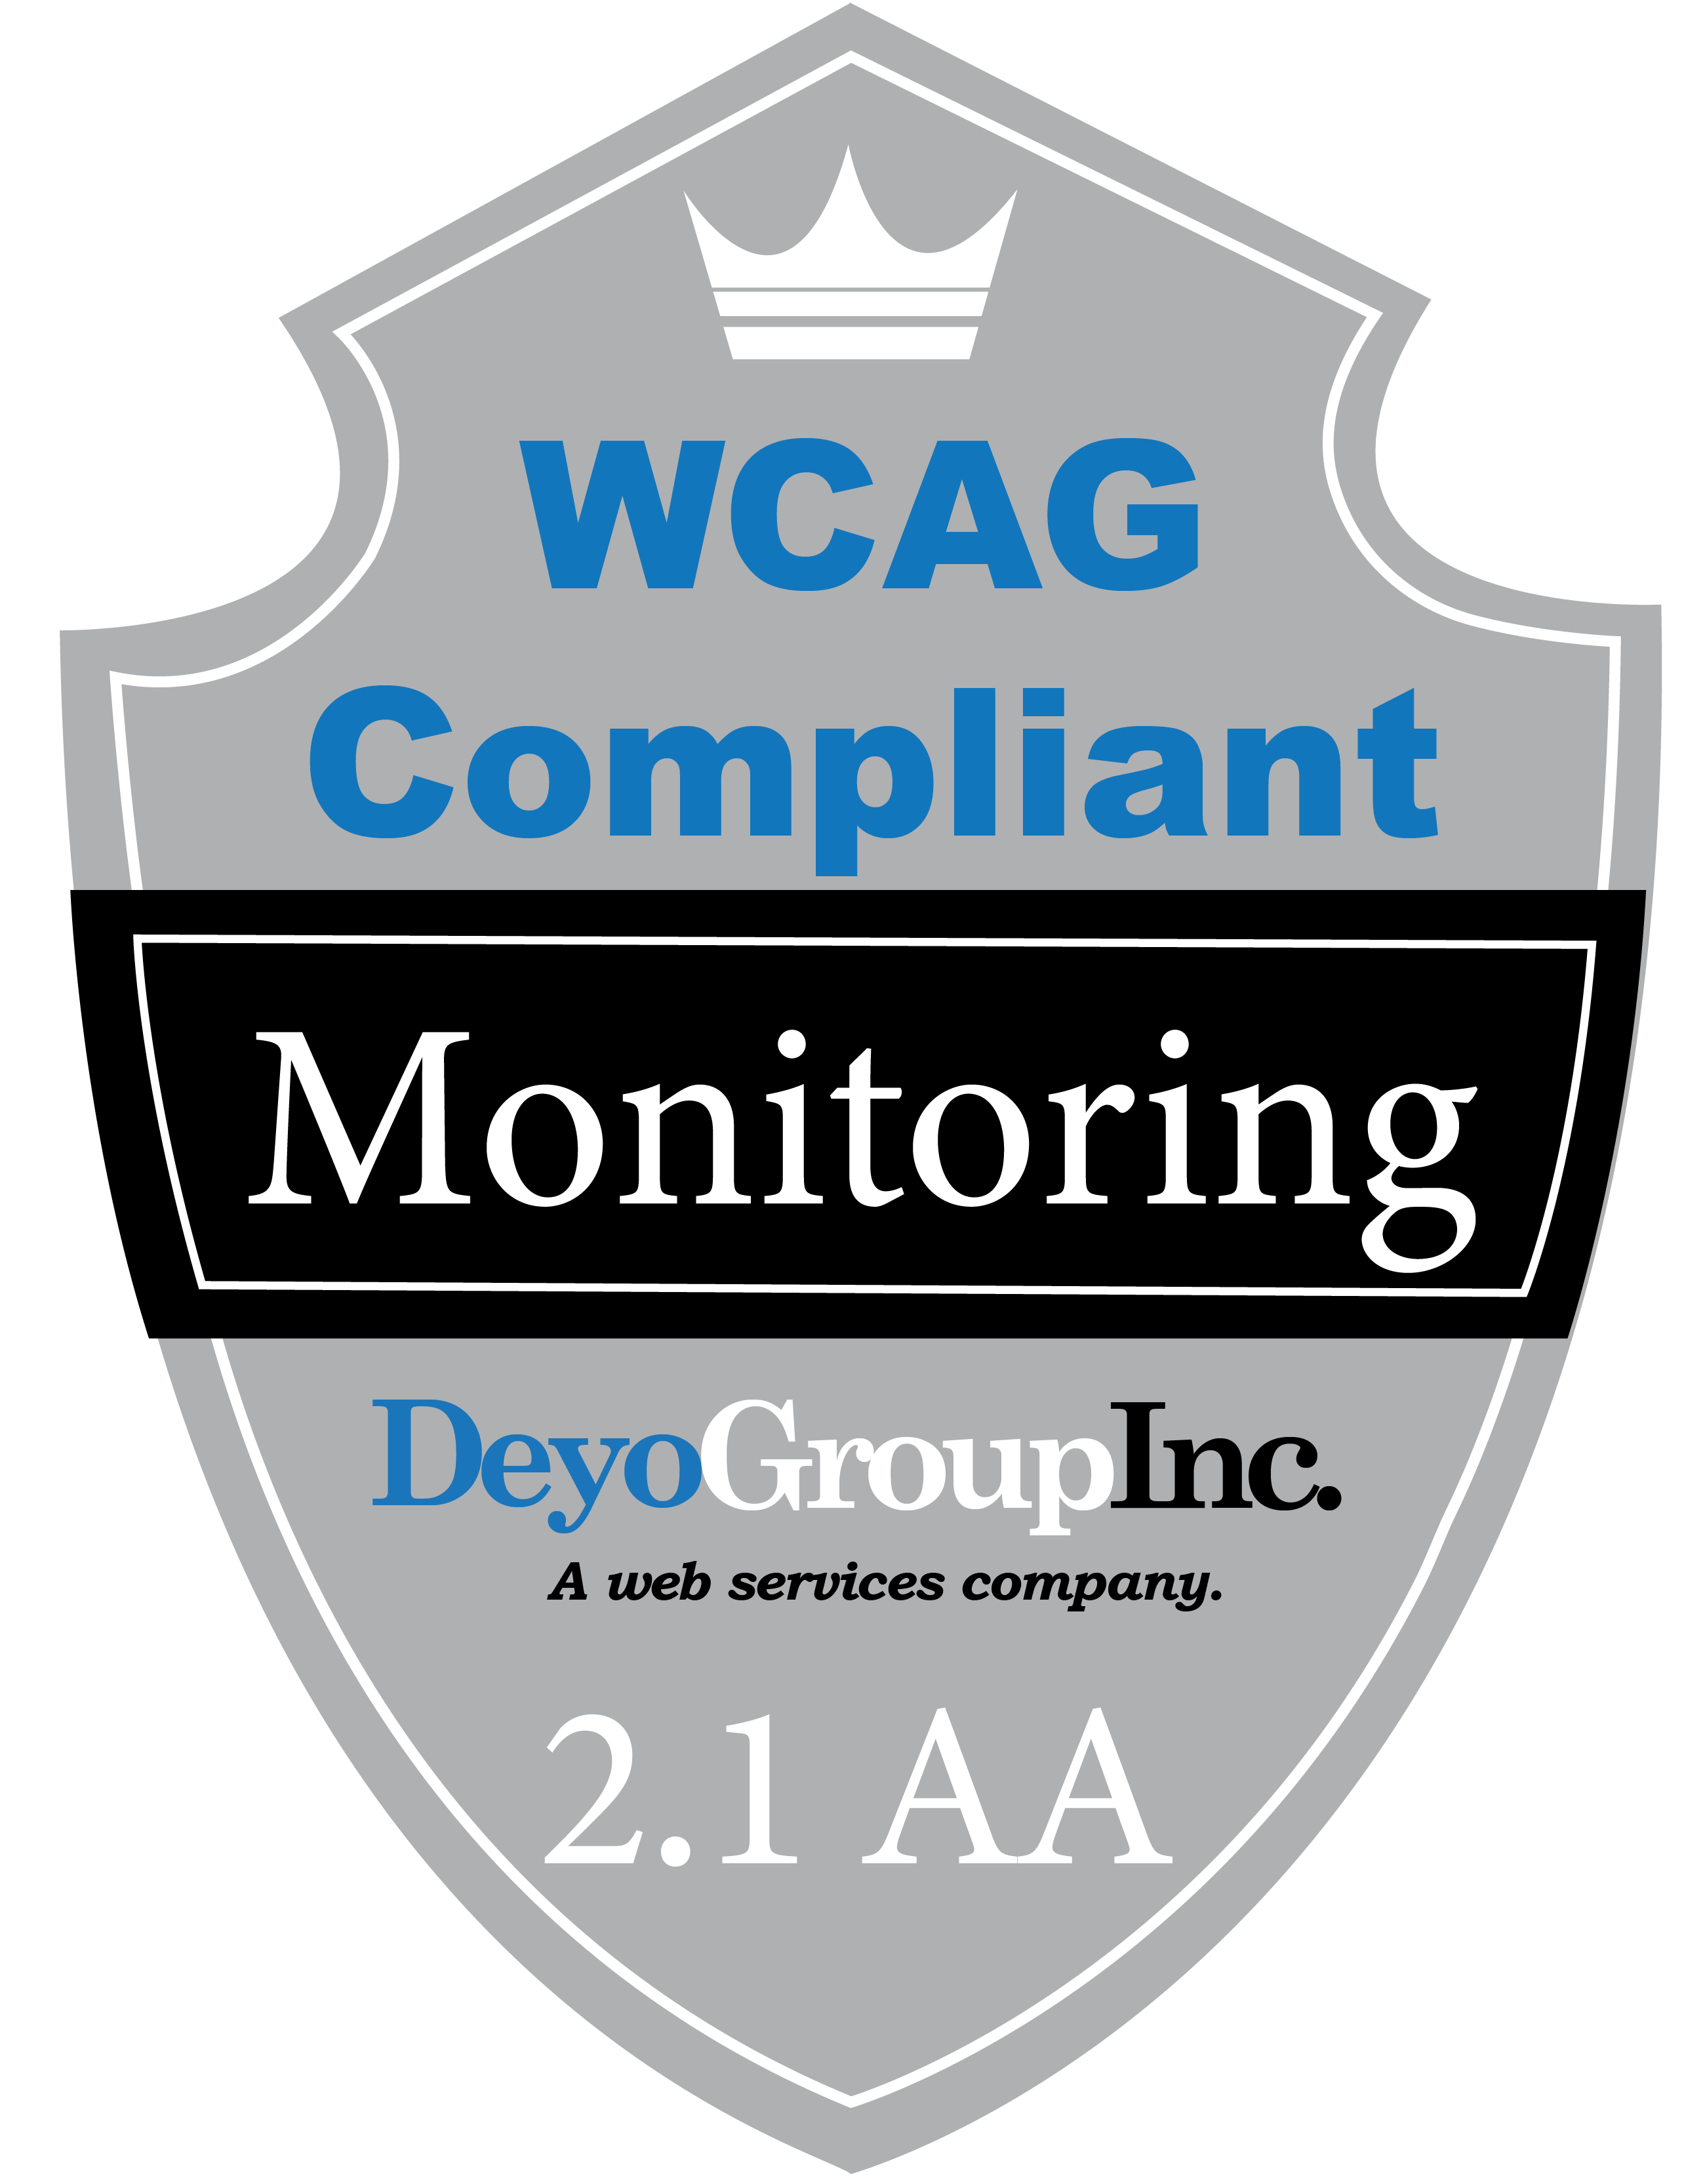 Piccadilly WCAG compliance 2.1AA - Monitored by DeyoGroup